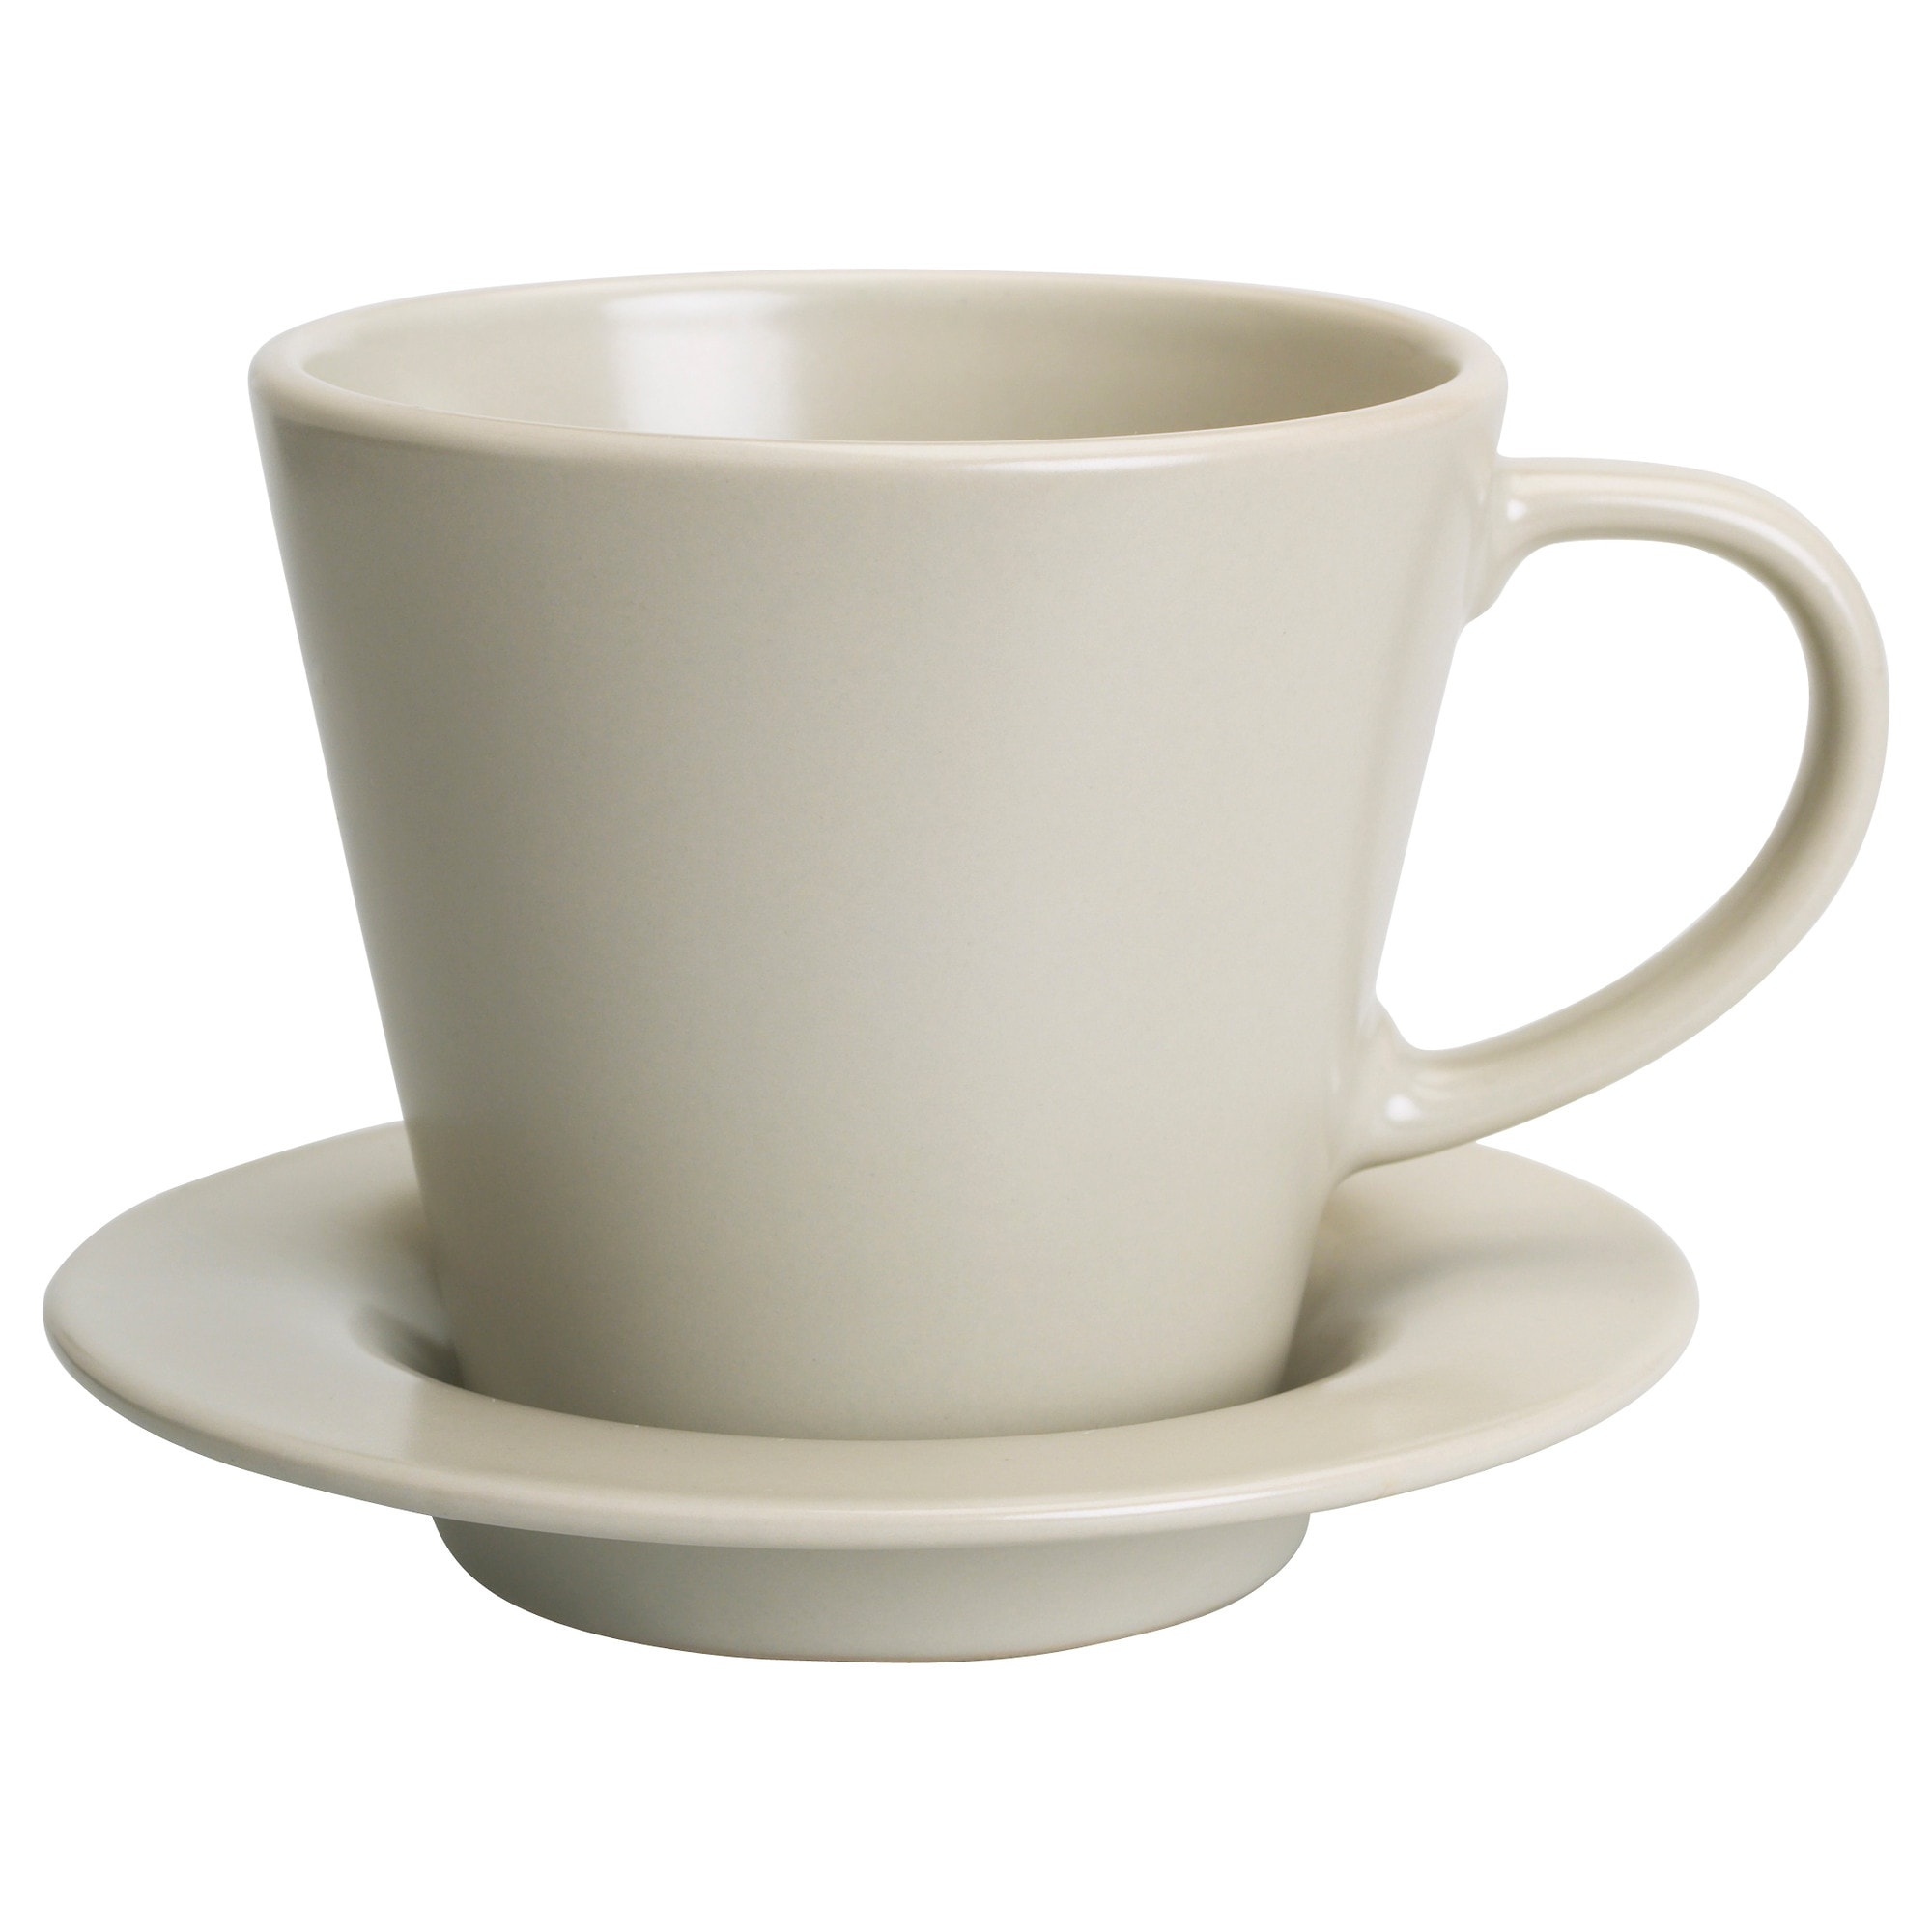 Dinera Coffee Cup And Saucer